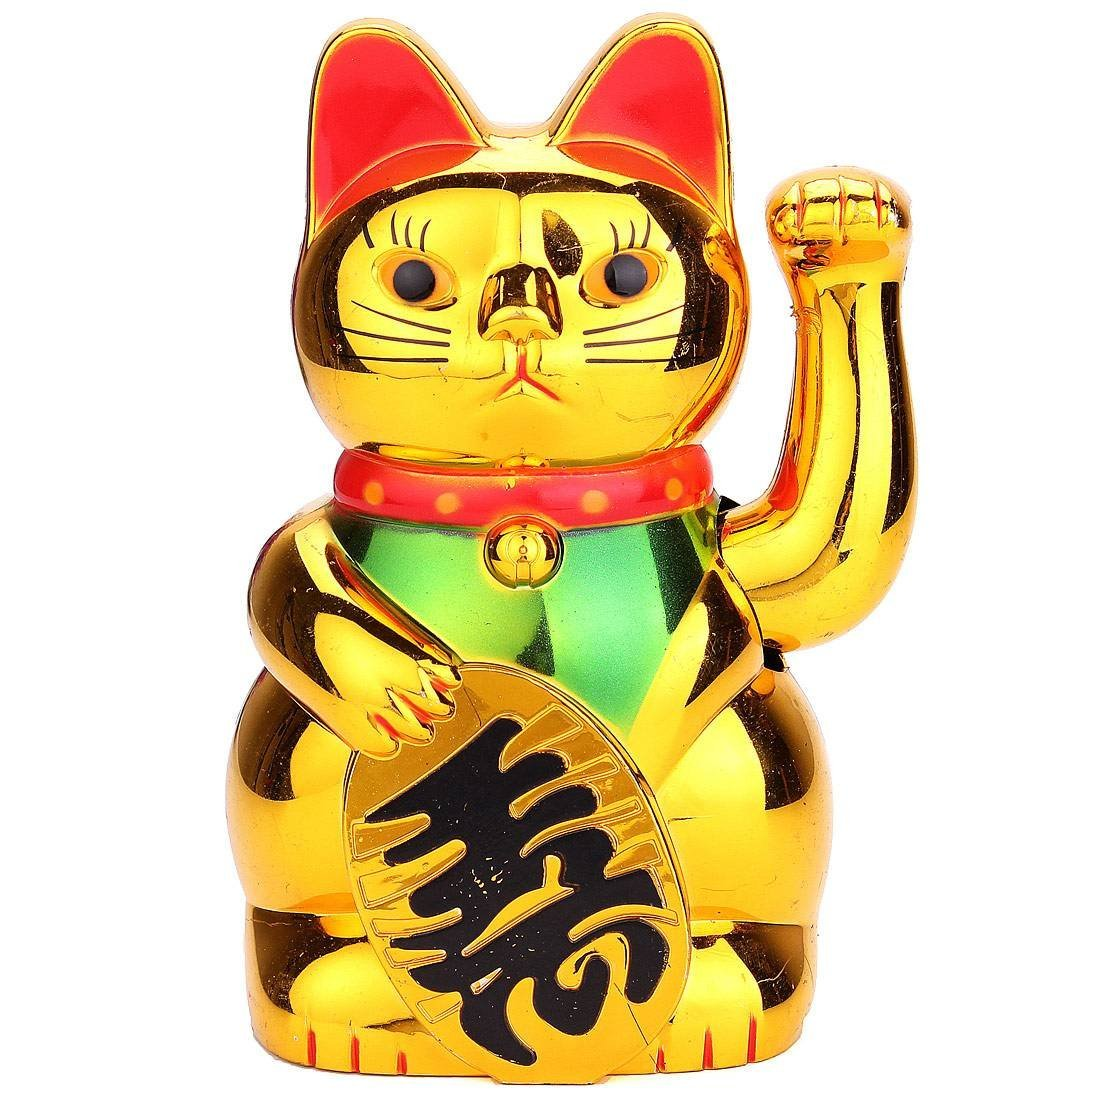 SIBAOLU Gold Maneki Neko Cute Lucky Cat Electric Craft Art